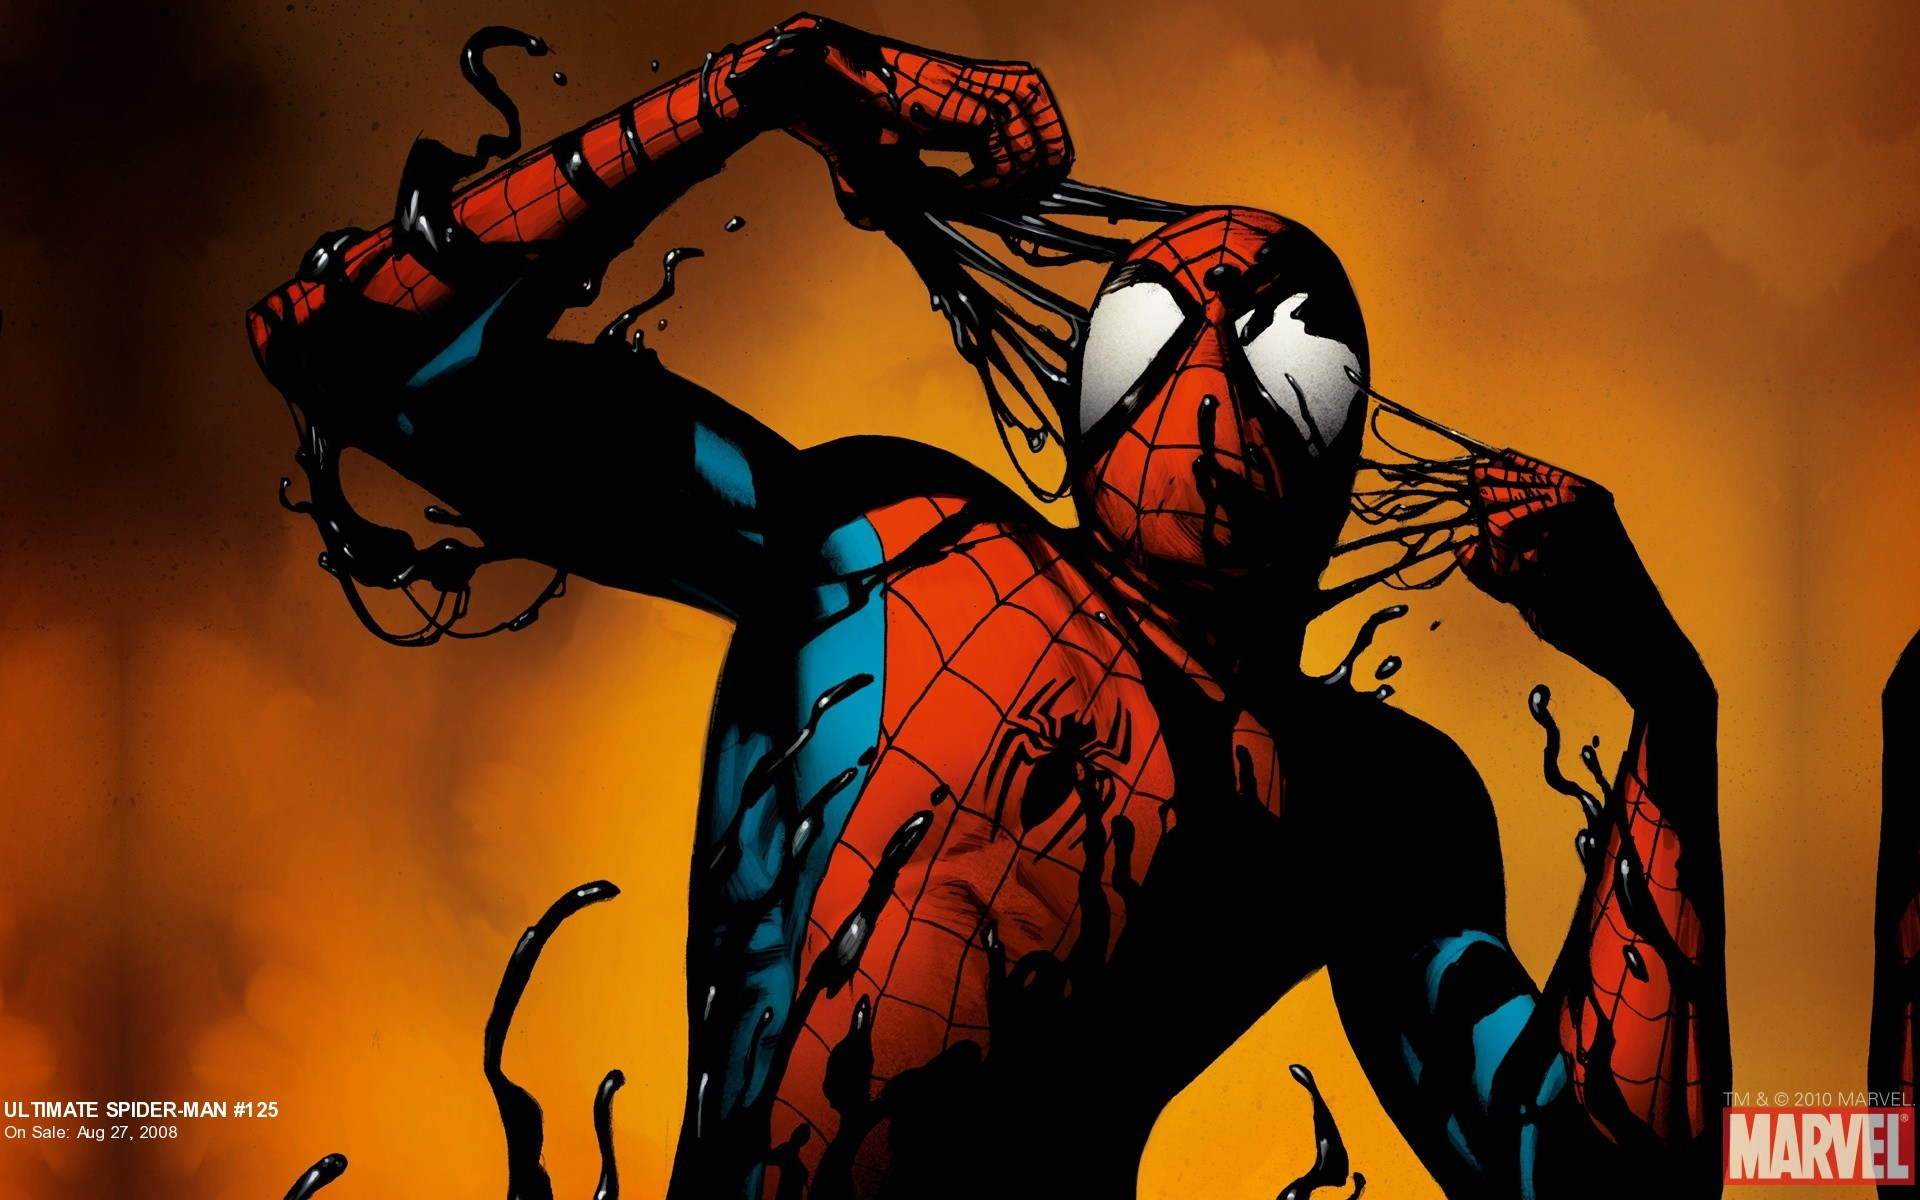 Spider Man Wallpaper Download Free Stunning Full Hd Wallpapers